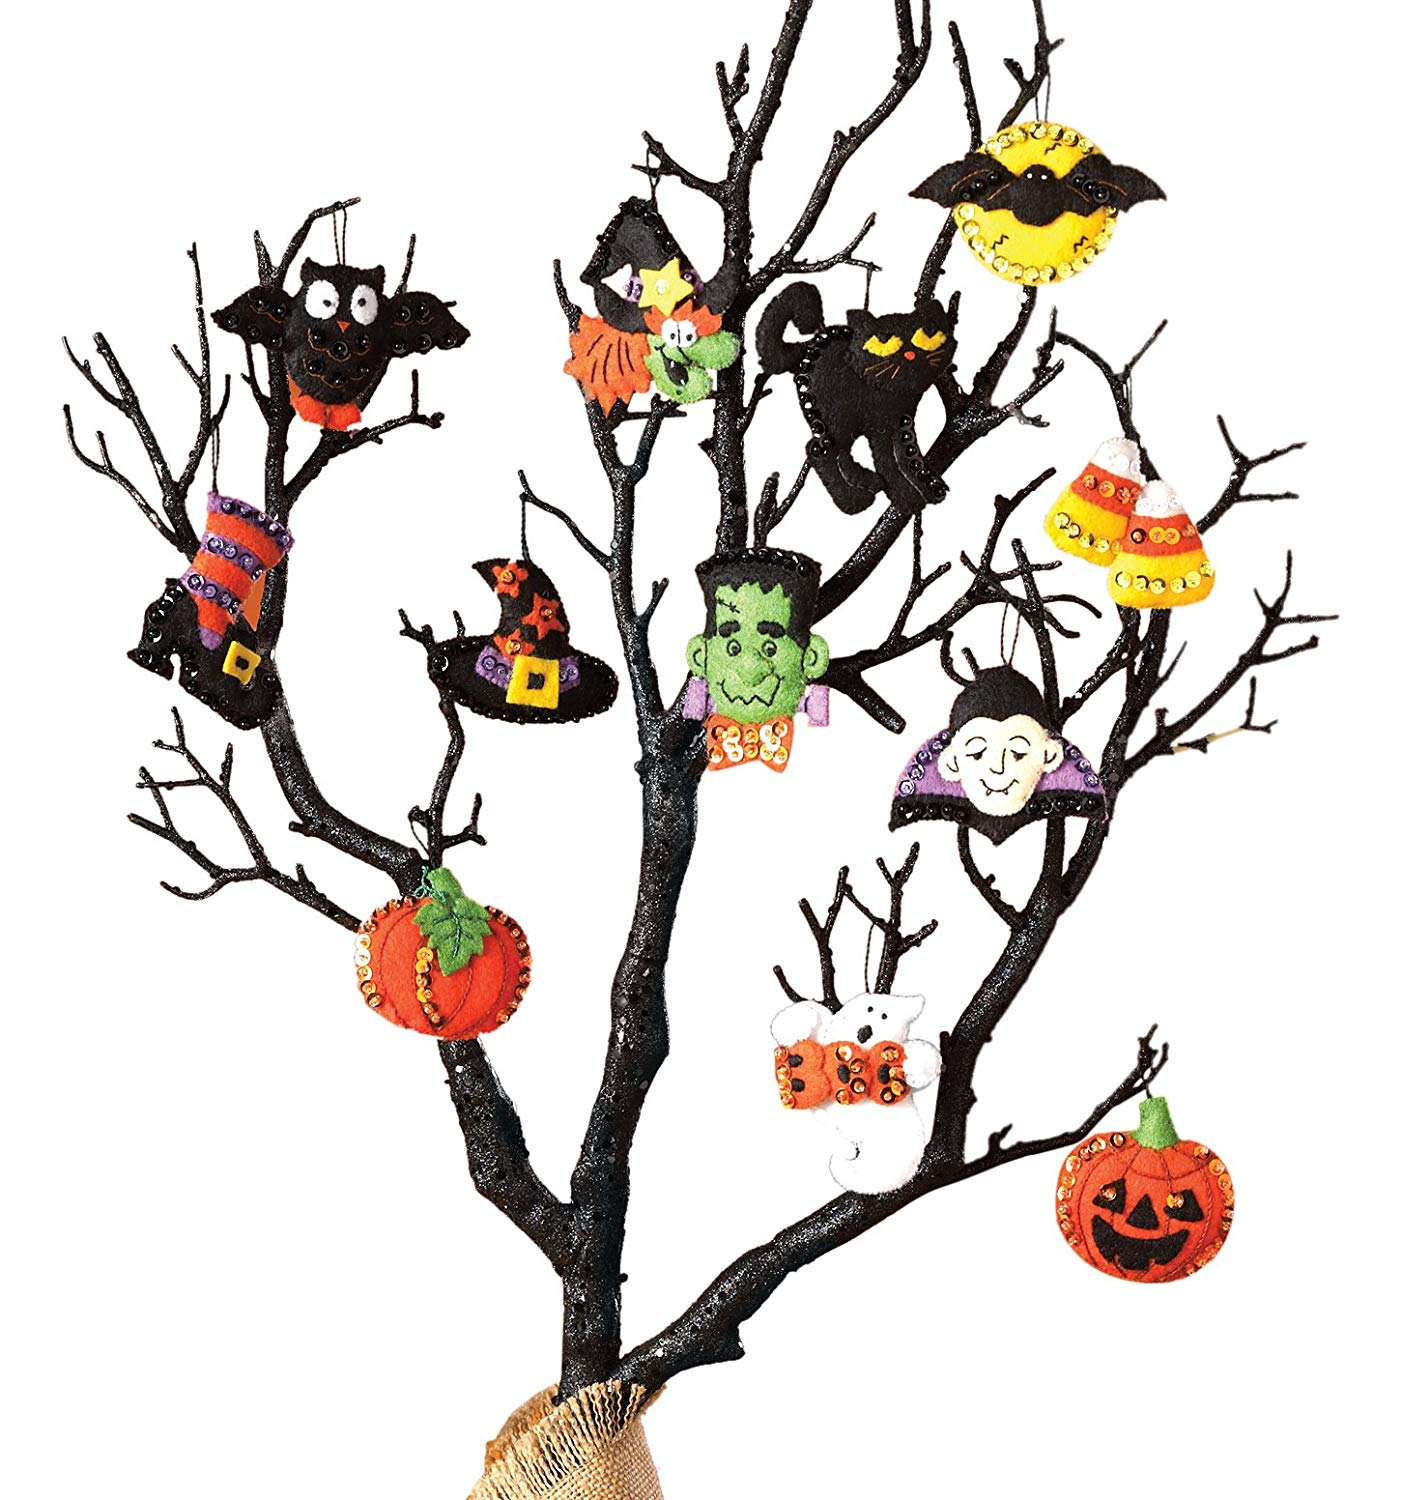 Bucilla Halloween Felt Applique Ornaments Kit (Size 2 2.5-Inch), 86430 Set of 12